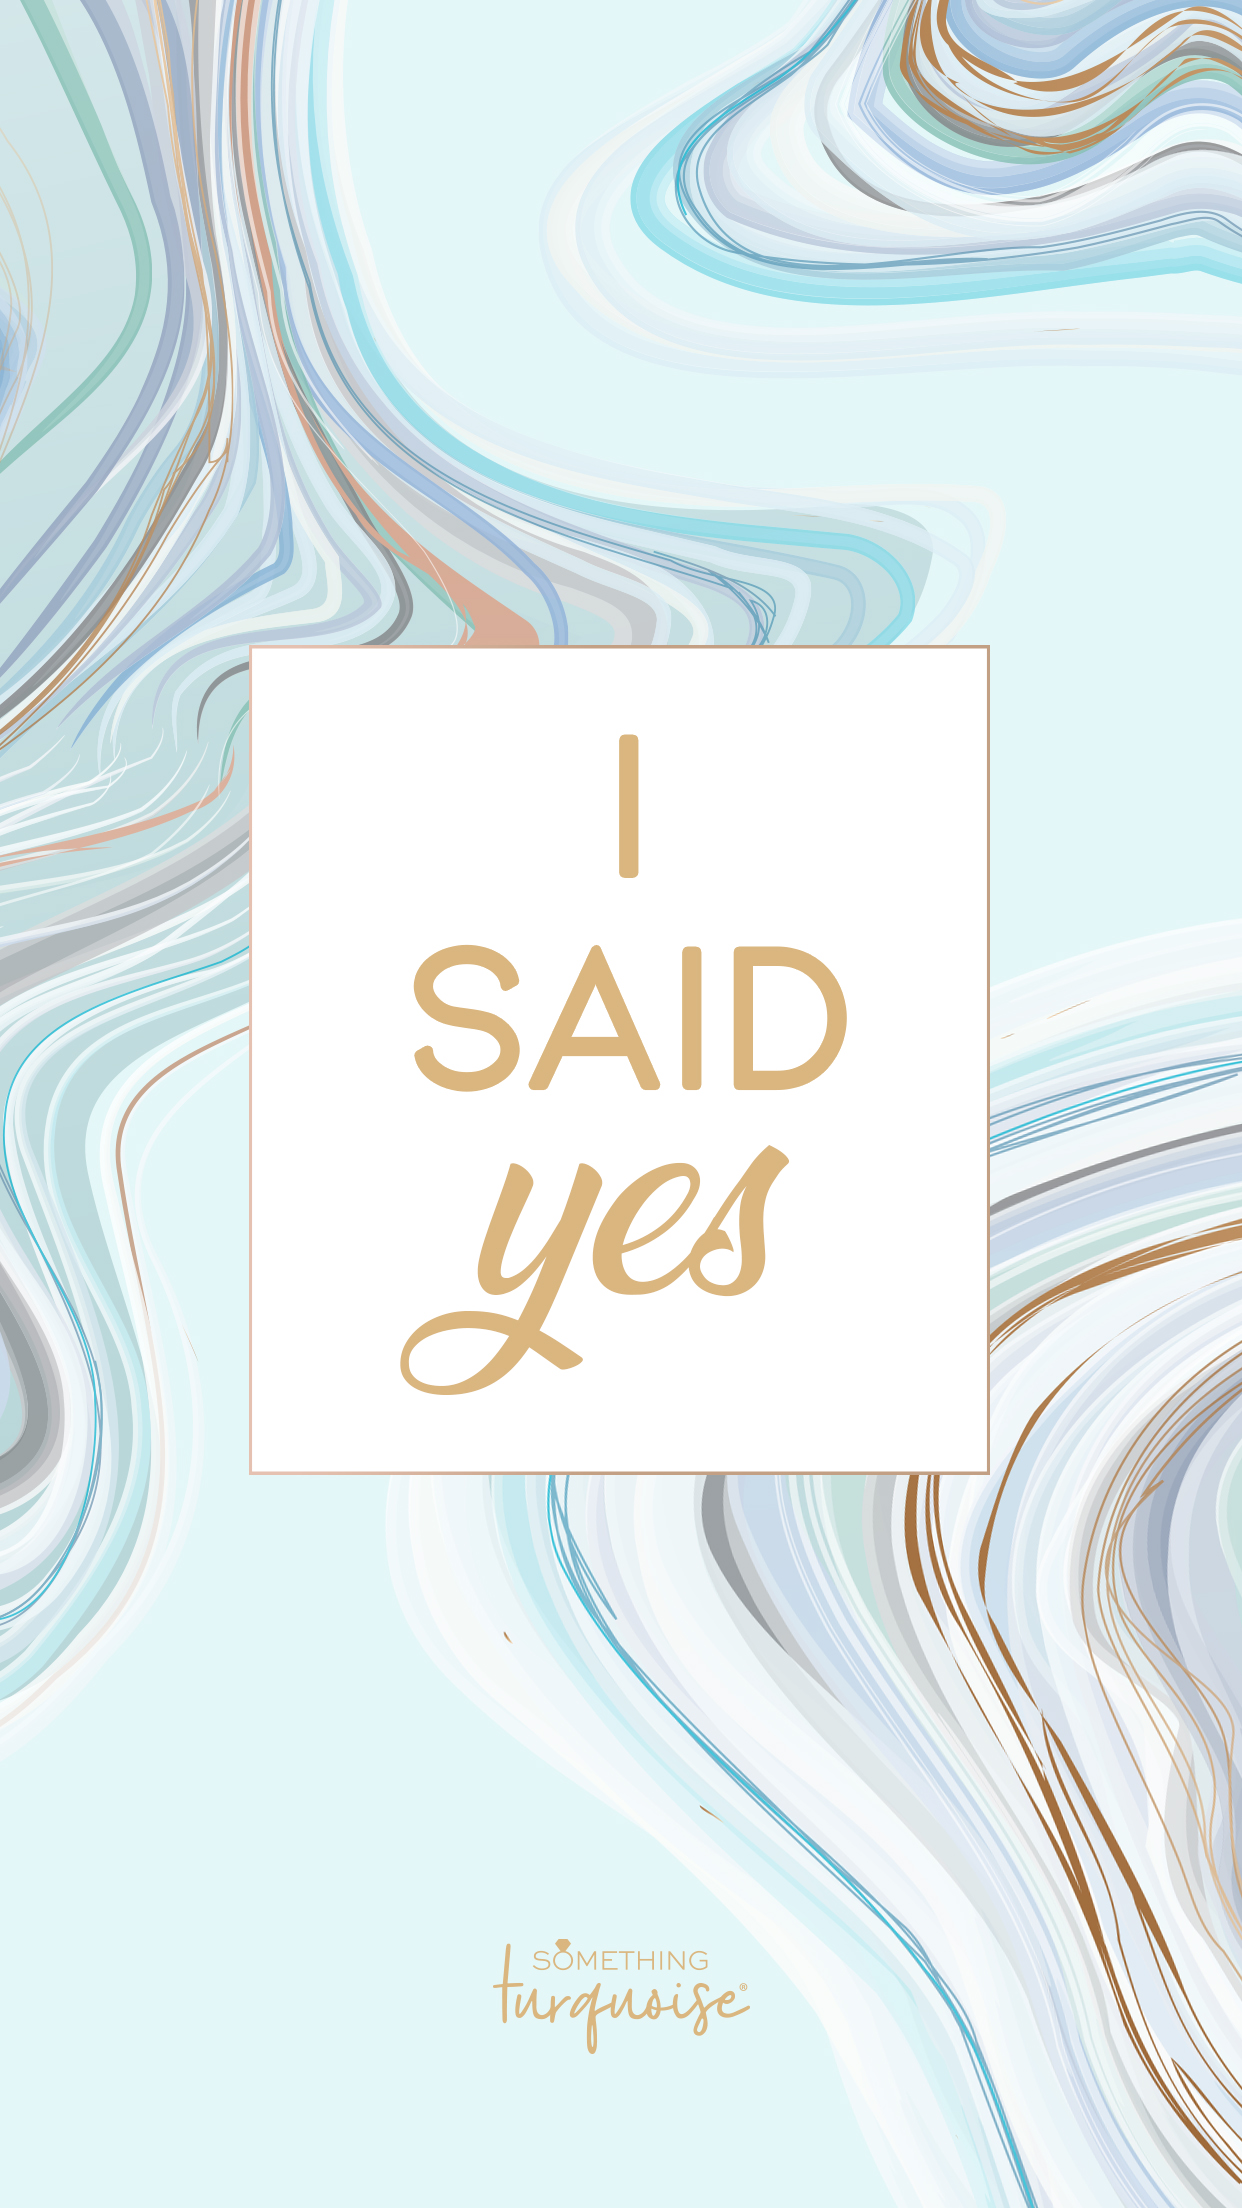 Gorgeous turquoise and aqua agate I Said Yes smart phone wallpaper!